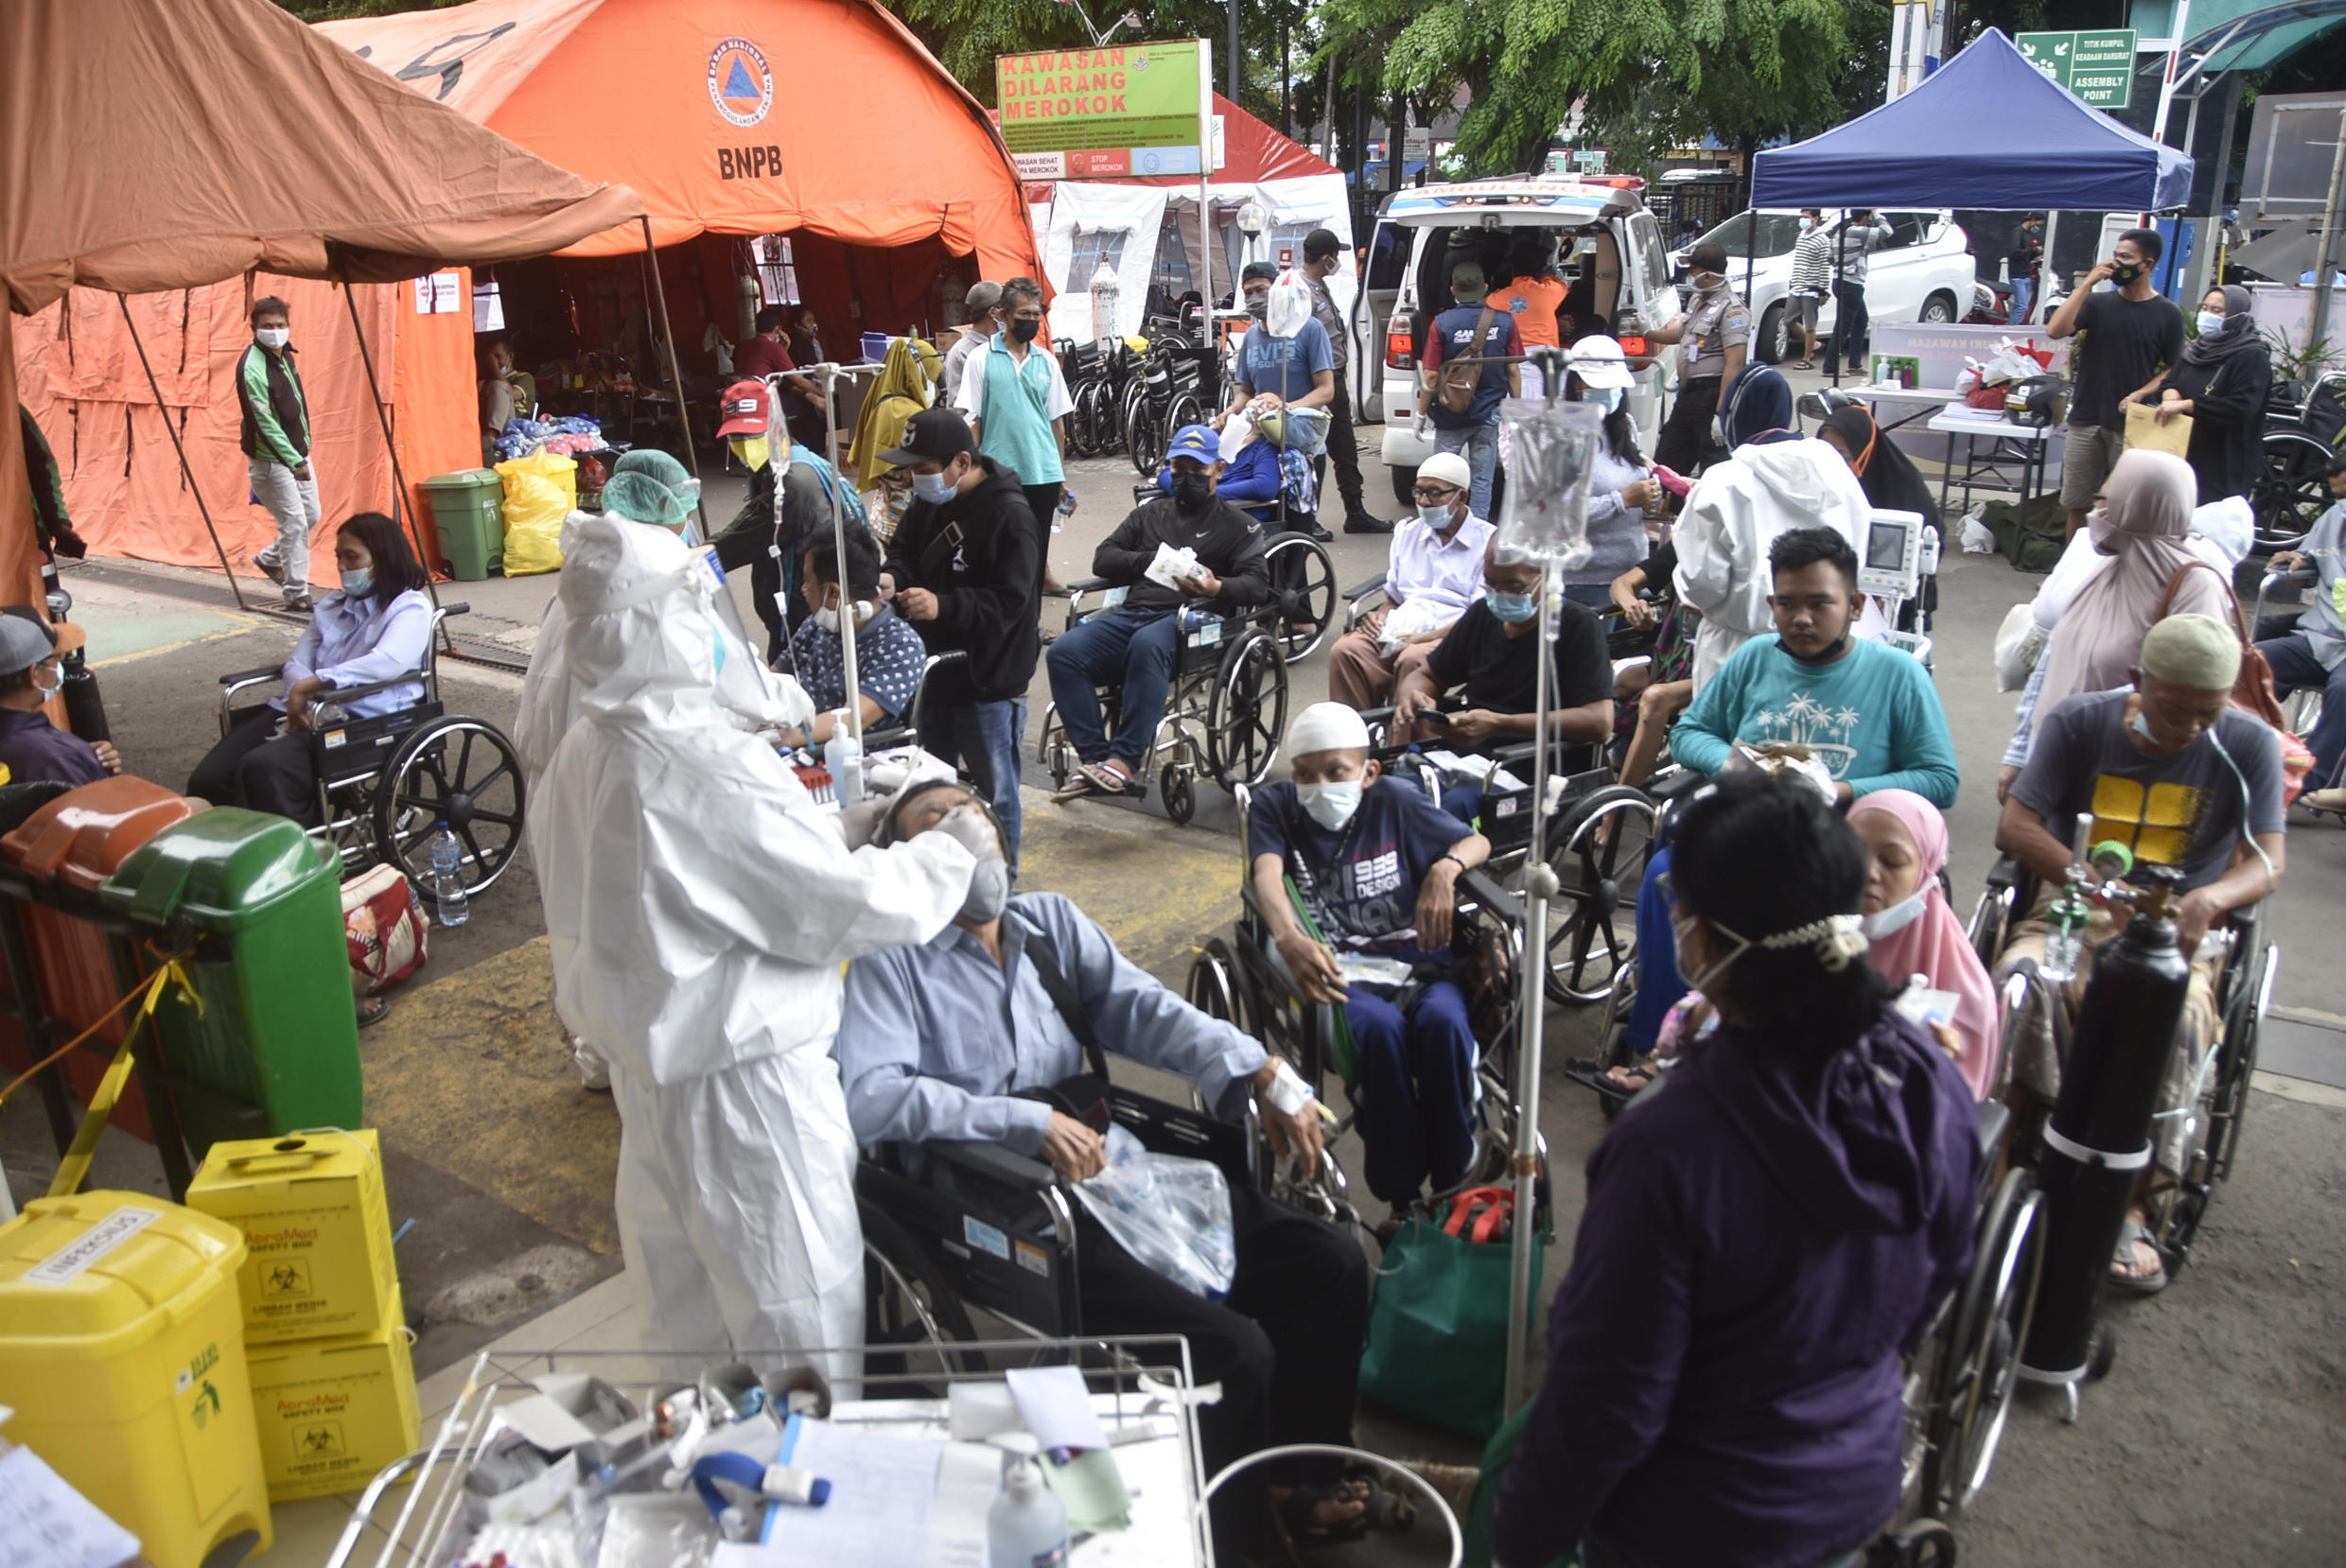 Medical staff test people for Covid-19 outside a hospital in Bekasi, Indonesia